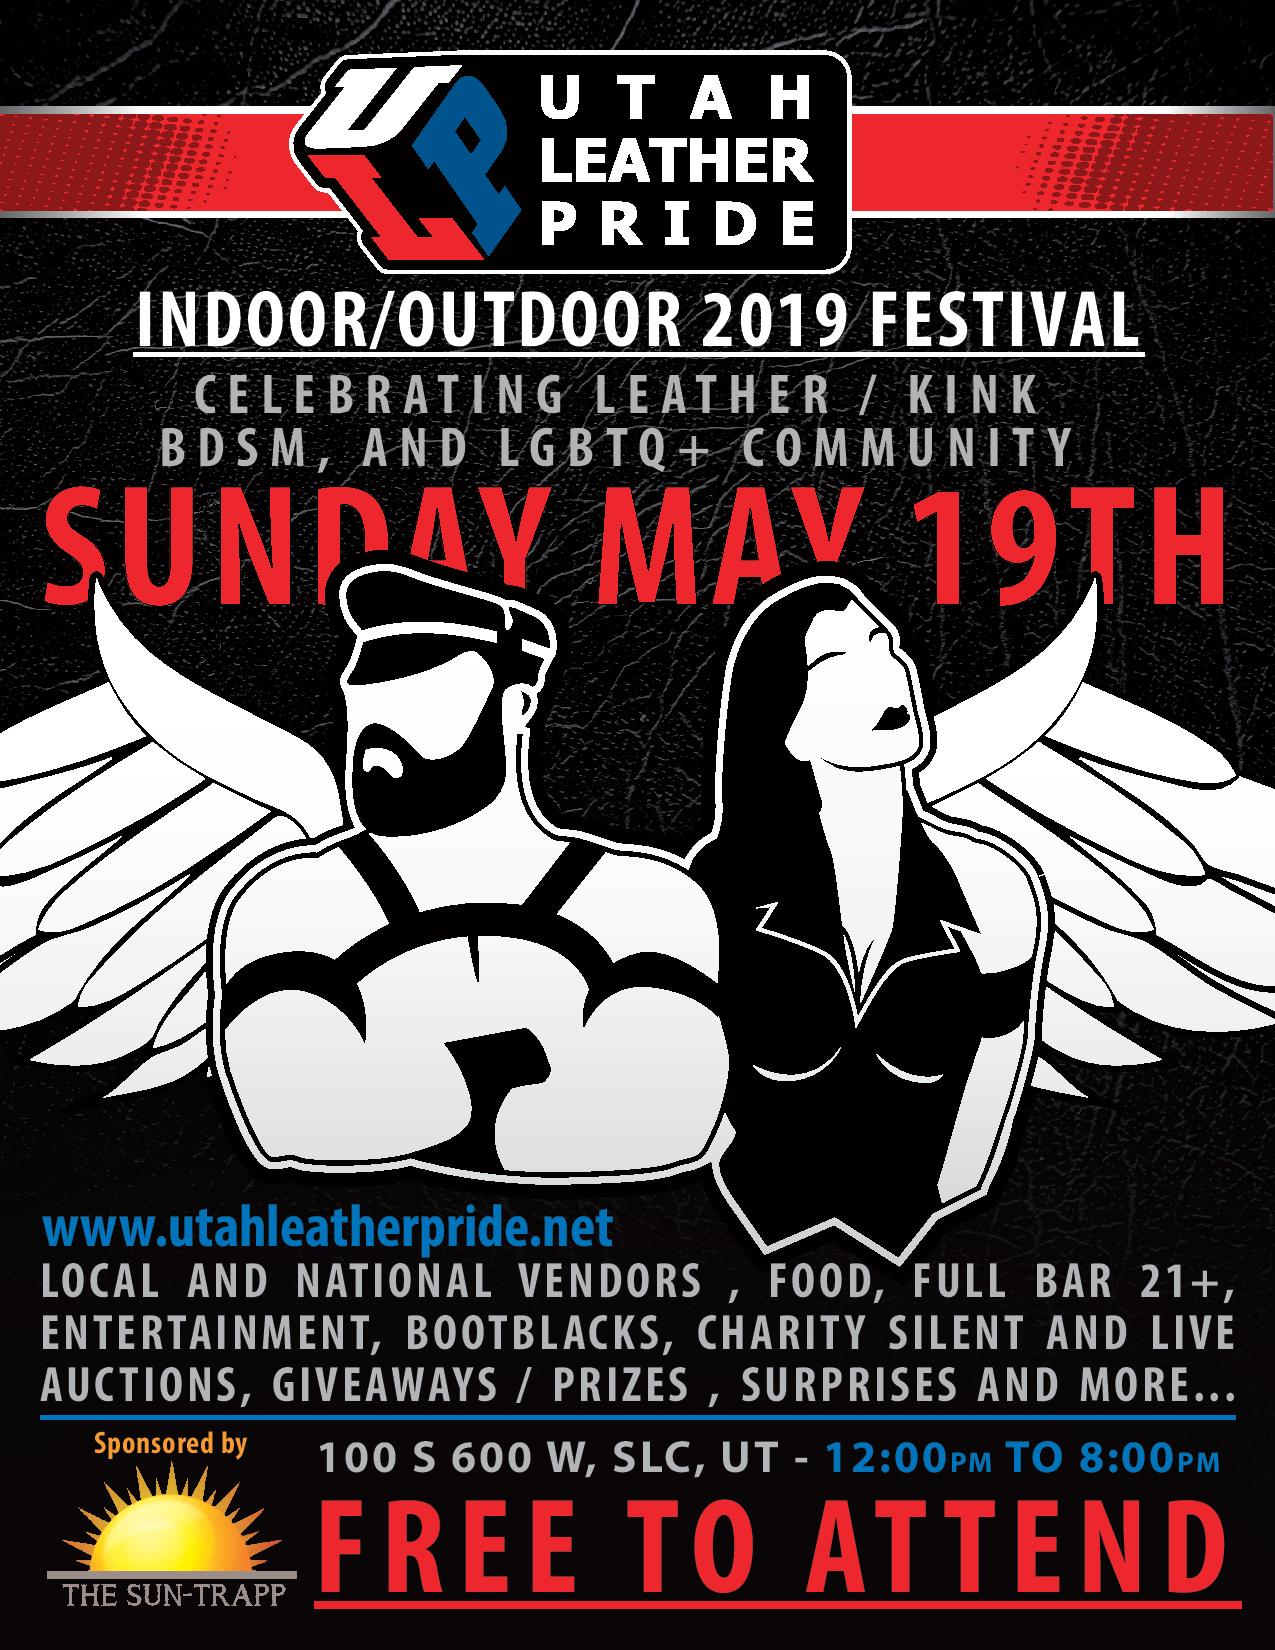 34f32387c25e7 The second annual Utah Leather Pride Festival will be held on Sunday May  19